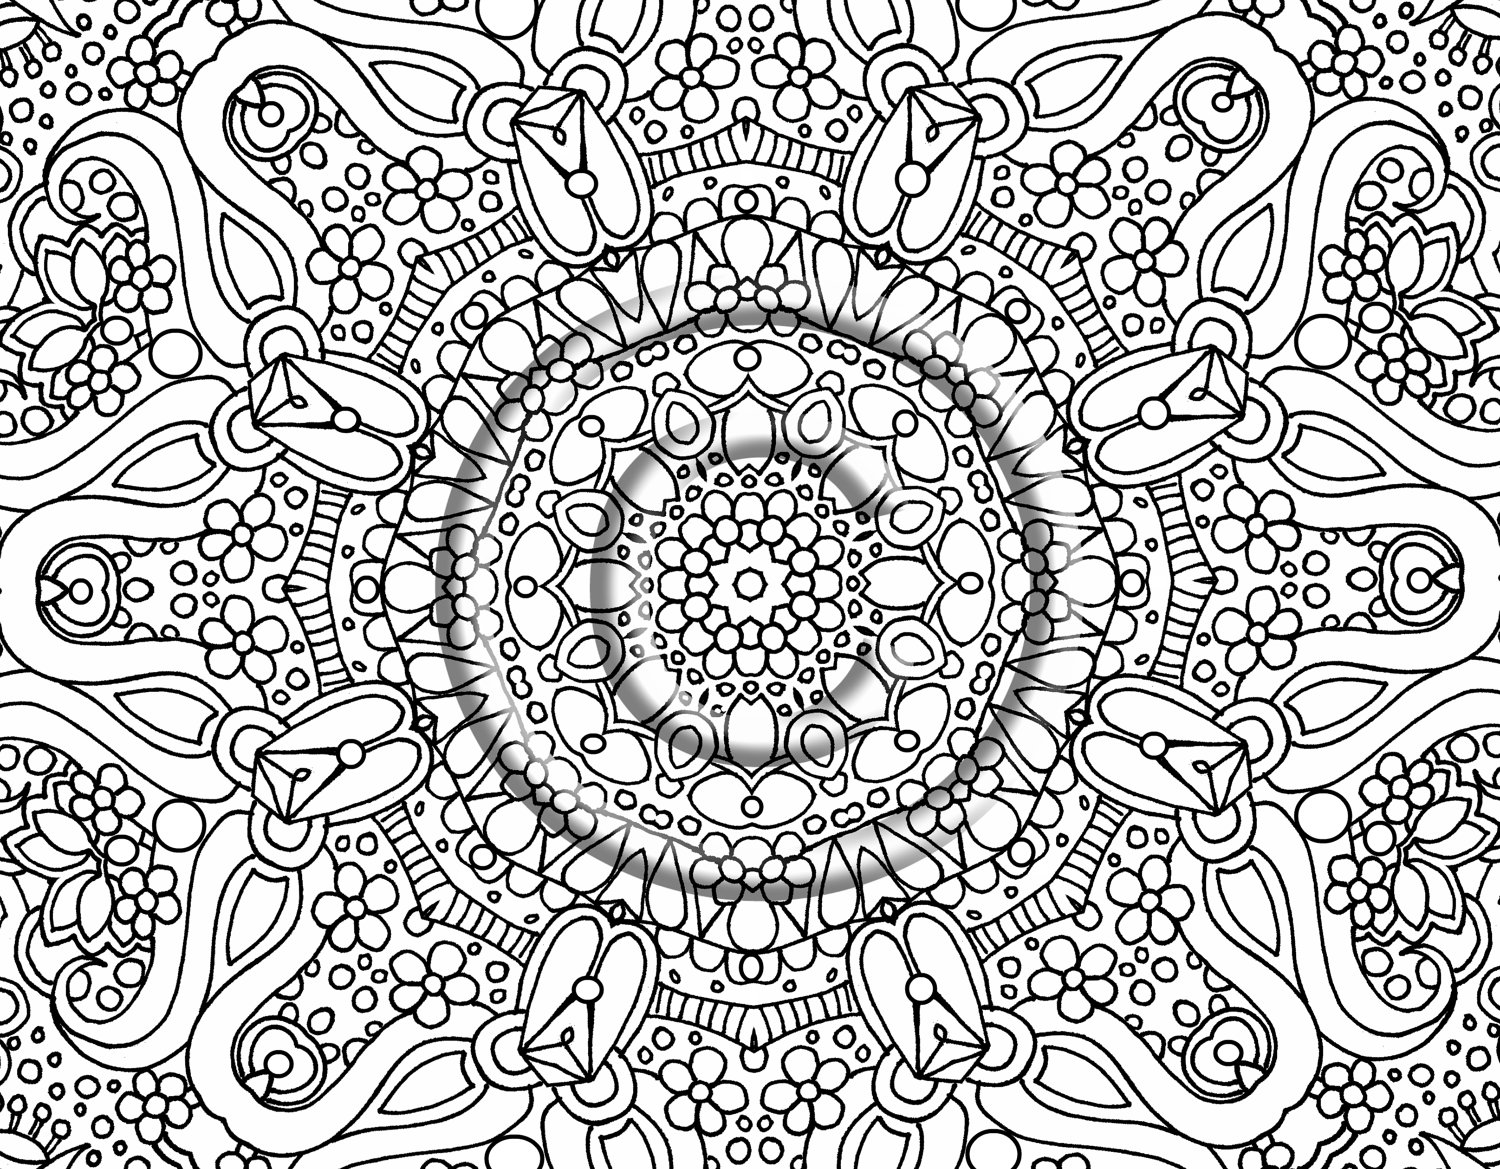 printable coloring designs free 20 abstract coloring pages in ai designs printable coloring